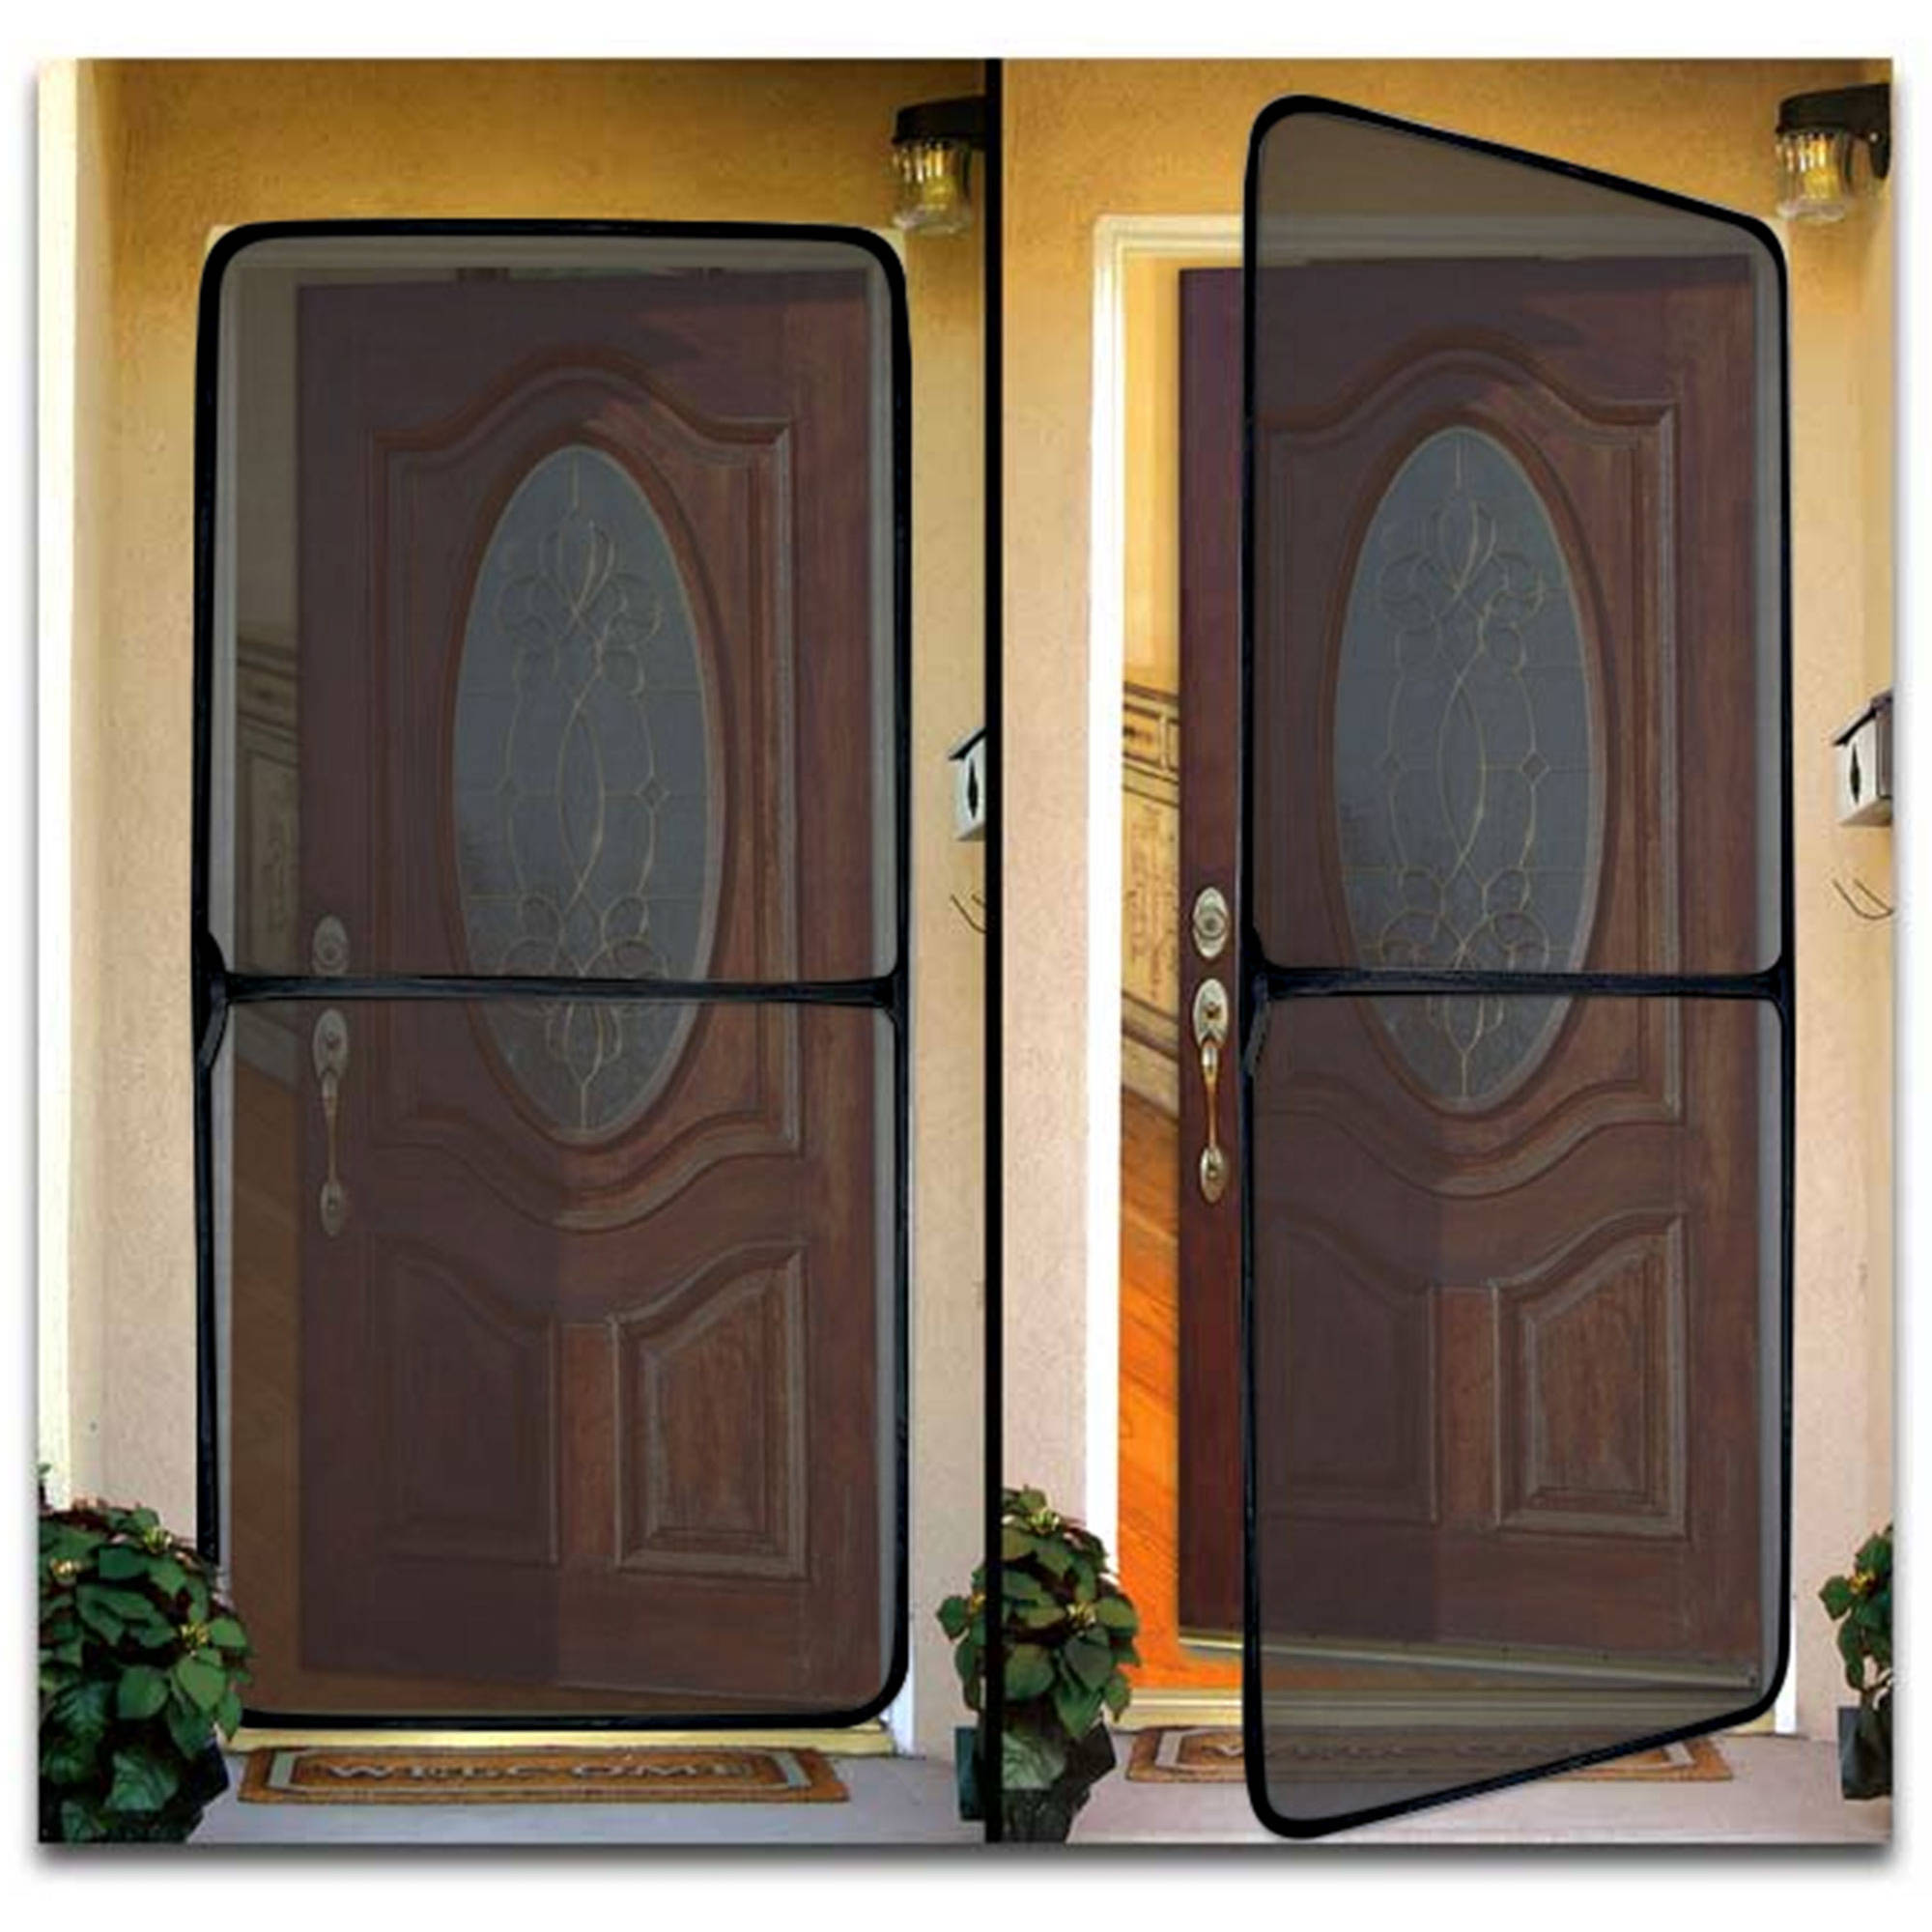 & Instant Screen Door For Home And Office - Walmart.com